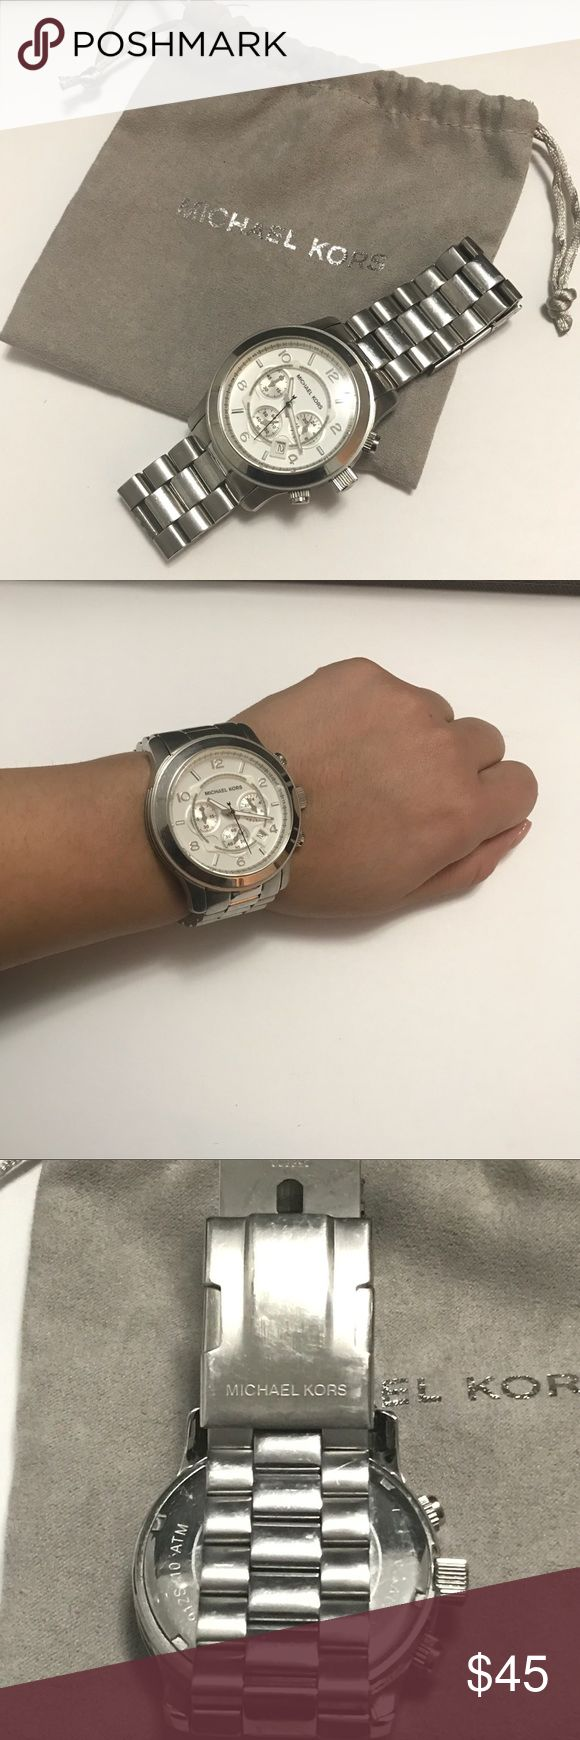 MK Women Silver Watch stainless steel One of the most popular style of MK women watches. It looks great on with a work, casual, or date night outfit. Light scratches. Requires battery.  Measurements Dial: 1.5in / 4cm Band: 0.75in / 2cm Diameter: 2.75in / 7cm Michael Kors Accessories Watches